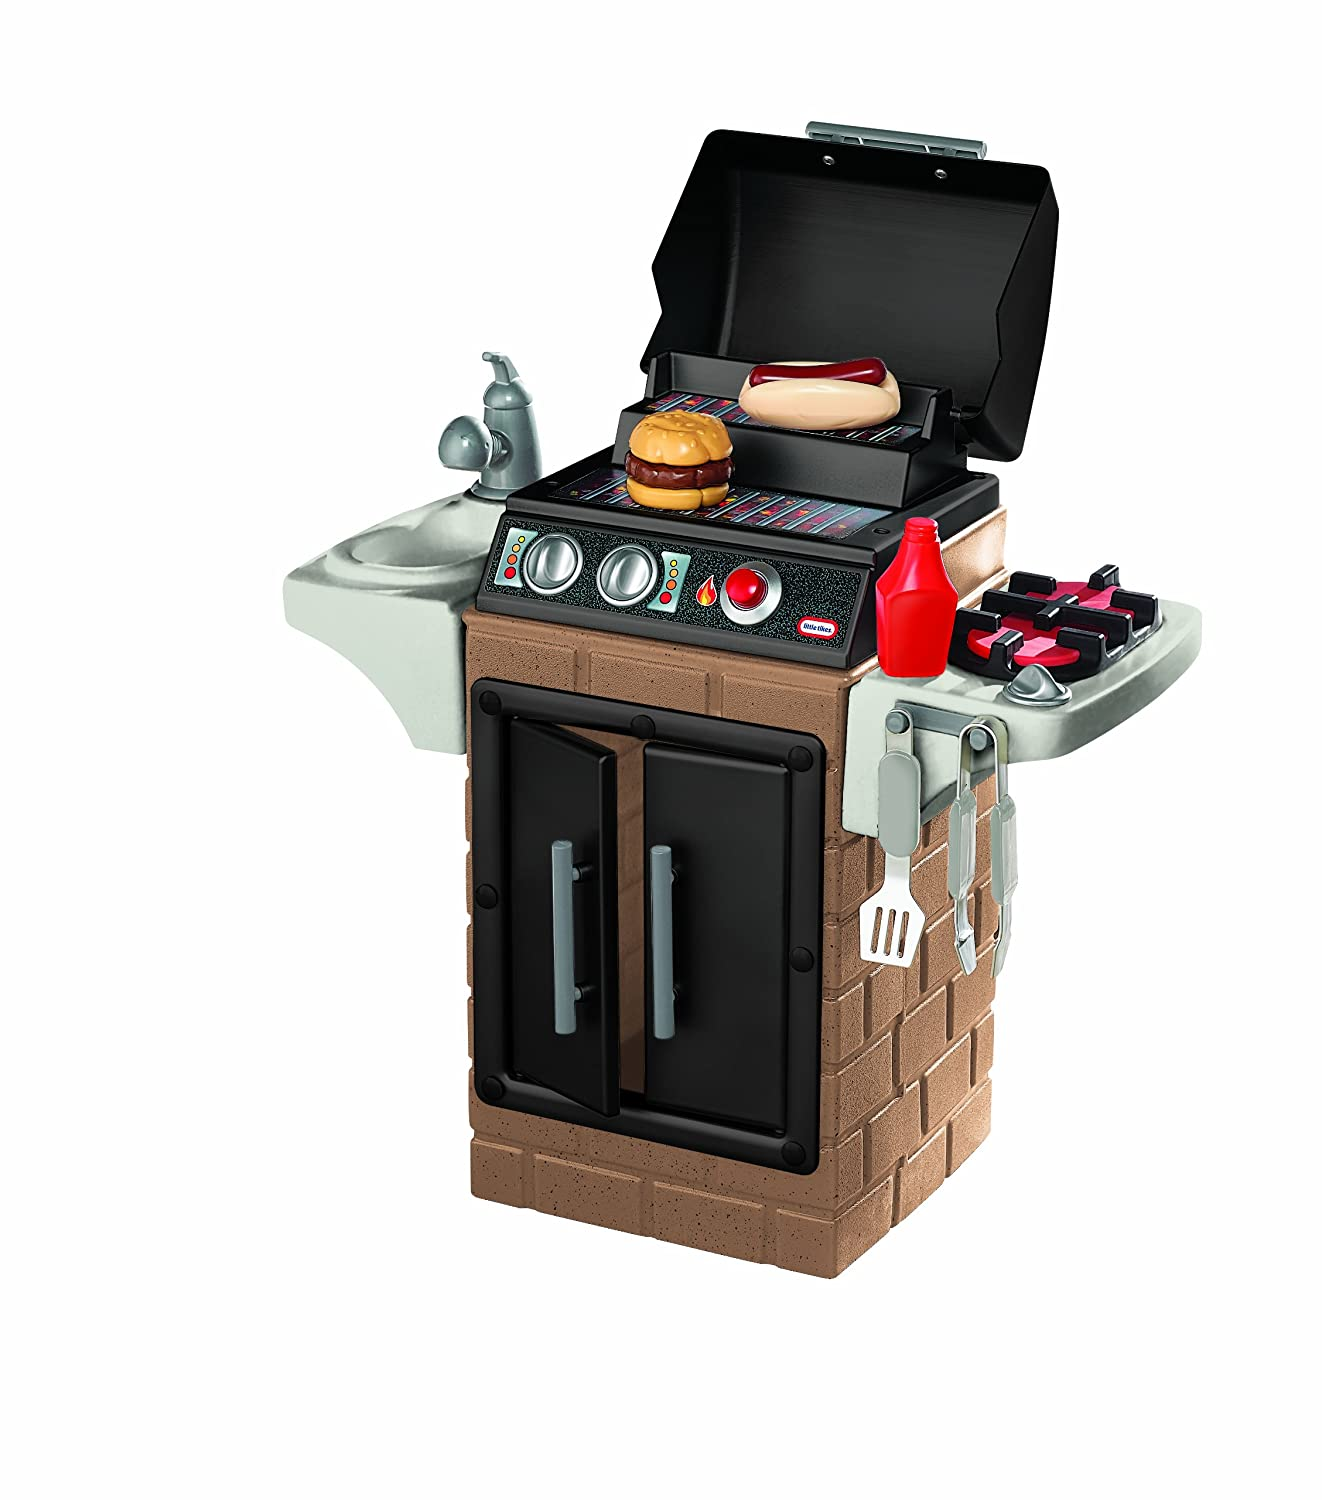 Little Tikes Get Out and Grill Kitchen Set